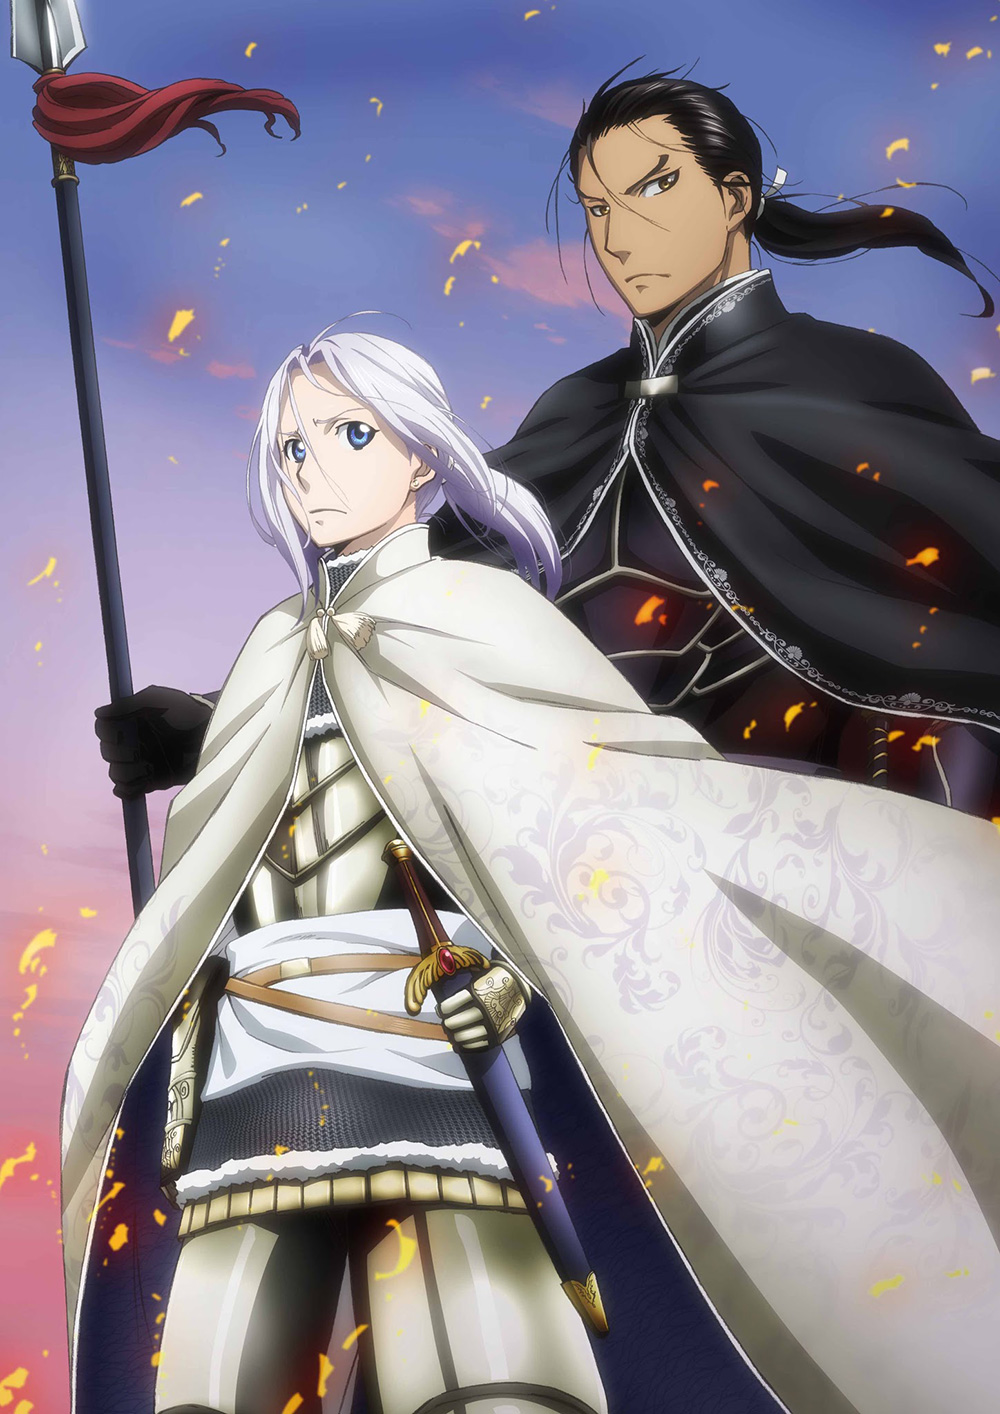 Arslan-Senki-Anime-Visual-1v2